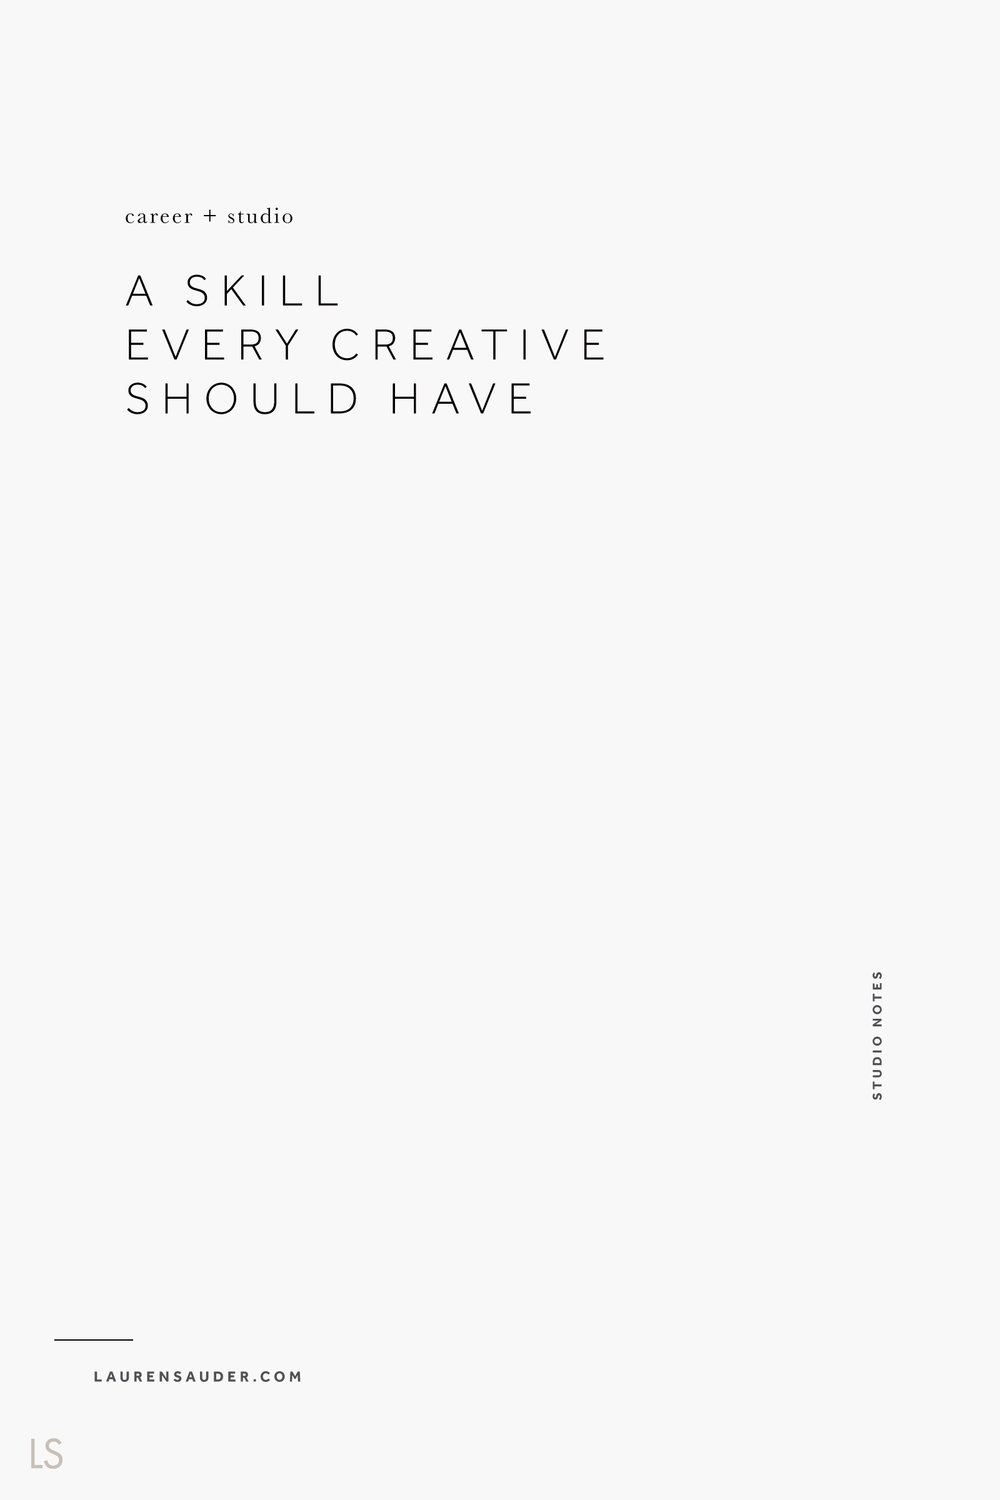 A Skill Every Creative Should Have - Lauren Sauder #studio creative living, creative advice, studio skills, artist studio, creative ideas, creative goals